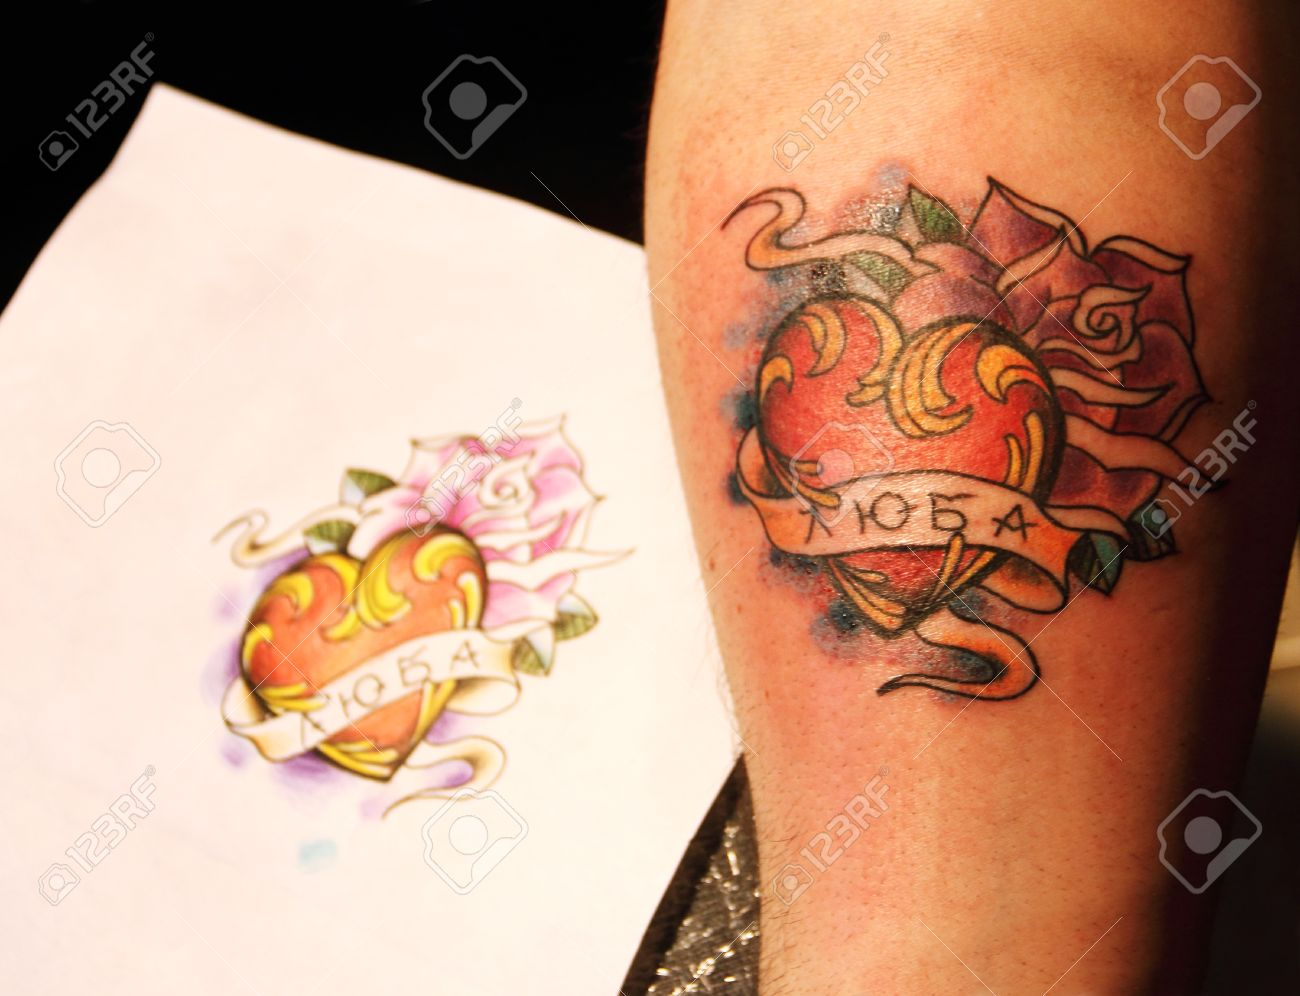 Finished fresh tattoo with sketch on paper Stock Photo - 13489295